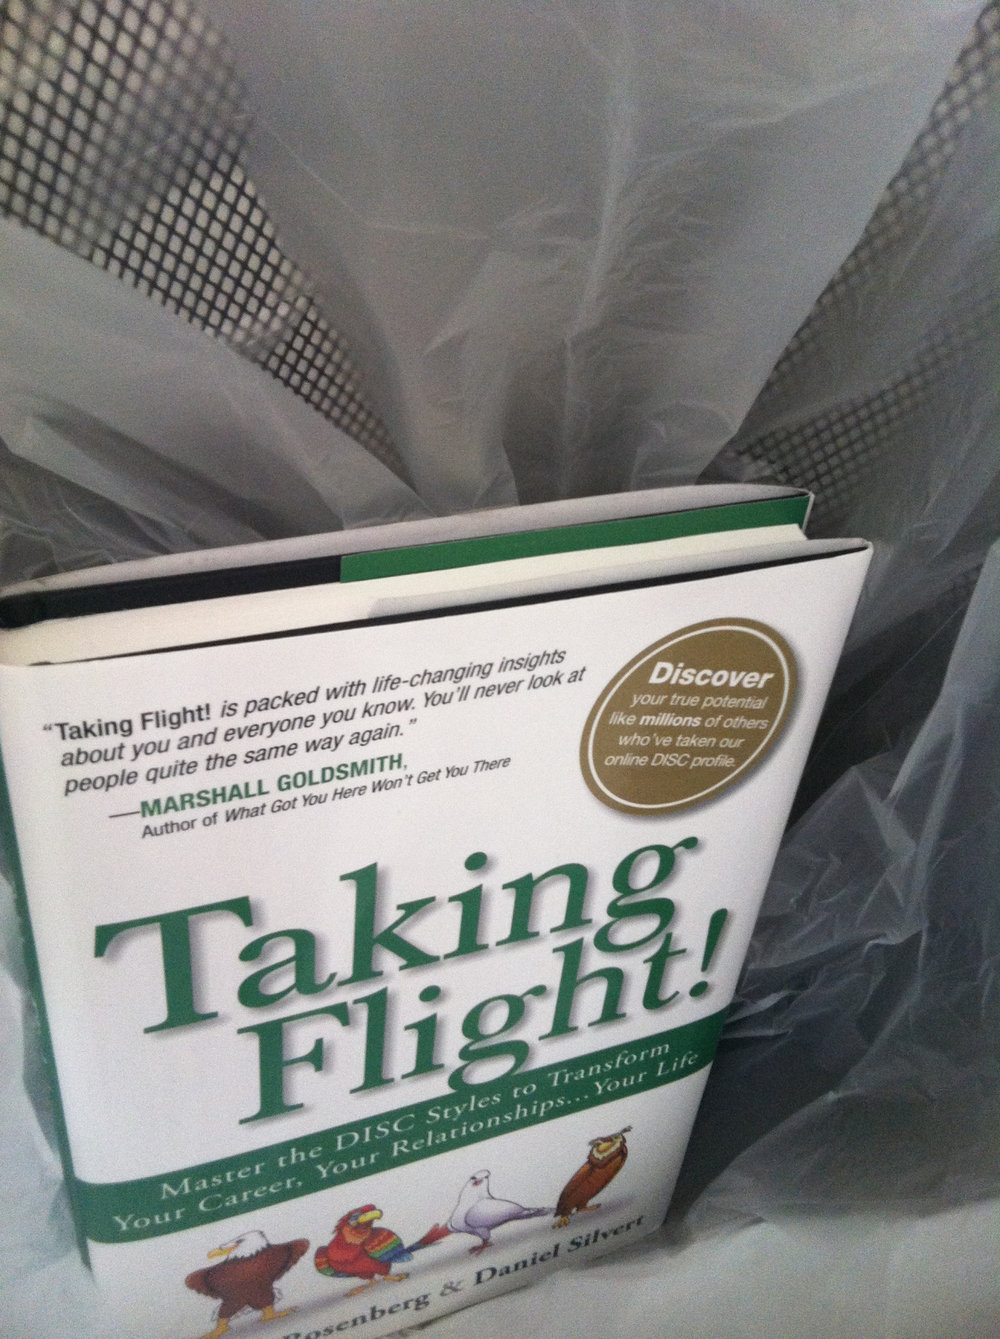 """I've never thrown away a book before, but here goes. My brother gave meTaking Flight!as a jokeafter he got it from a work retreat.The book invites you to """"master yourDISC style to transform your career, your relationships…your life.""""I've always liked personality tests, perhaps because they offer a sense of certainty about myself that I do not always feel.So I decided to see what the book was all about on the train this morning, and started reading: It began with a subtle crackling sound–hardly noticeable at first. Hm… An aftershock of anxiety rippled deep within the forest, known simply as 'Home.' Uh-oh… High above it all flew Dorian, a majestic eagle with a proud, sharp gaze and impressive seven-foot wingspan. I searched the book to see what DISC even means, flipping through page after page of a story about animated birds working together. It turns out 'D' in DISC stands for Dorian, the eagle (and for """"dominant,"""" """"direct,"""" """"decisive,"""" and """"driven,""""–all part of Dorian's leadership approach). The other letters stand for other bird characters in the book.I flipped to the back and read about the authors. One has an MBA and is an entrepreneur. The other is an """"executive coach."""" I imagined them in a grim conference room leading a group of office workers in an exercise where they discuss who is Dorian, who is Ivy (another bird), who is Samuel, etc. And then I asked myself, what do the authors of Taking Flight know about me that I don't know about me? Why do they get paid for this? I wasn't going to do it. I wasn't going to fill my head with DISC. I've read much better self-help books recently, such as The Happiness Trap and The Road Less Traveled. In fact they're too good to be referred to as self-help books, especially in the same breath as Taking Flight! I didn't want other people to do it either. So I threw the book in a garbage can."""